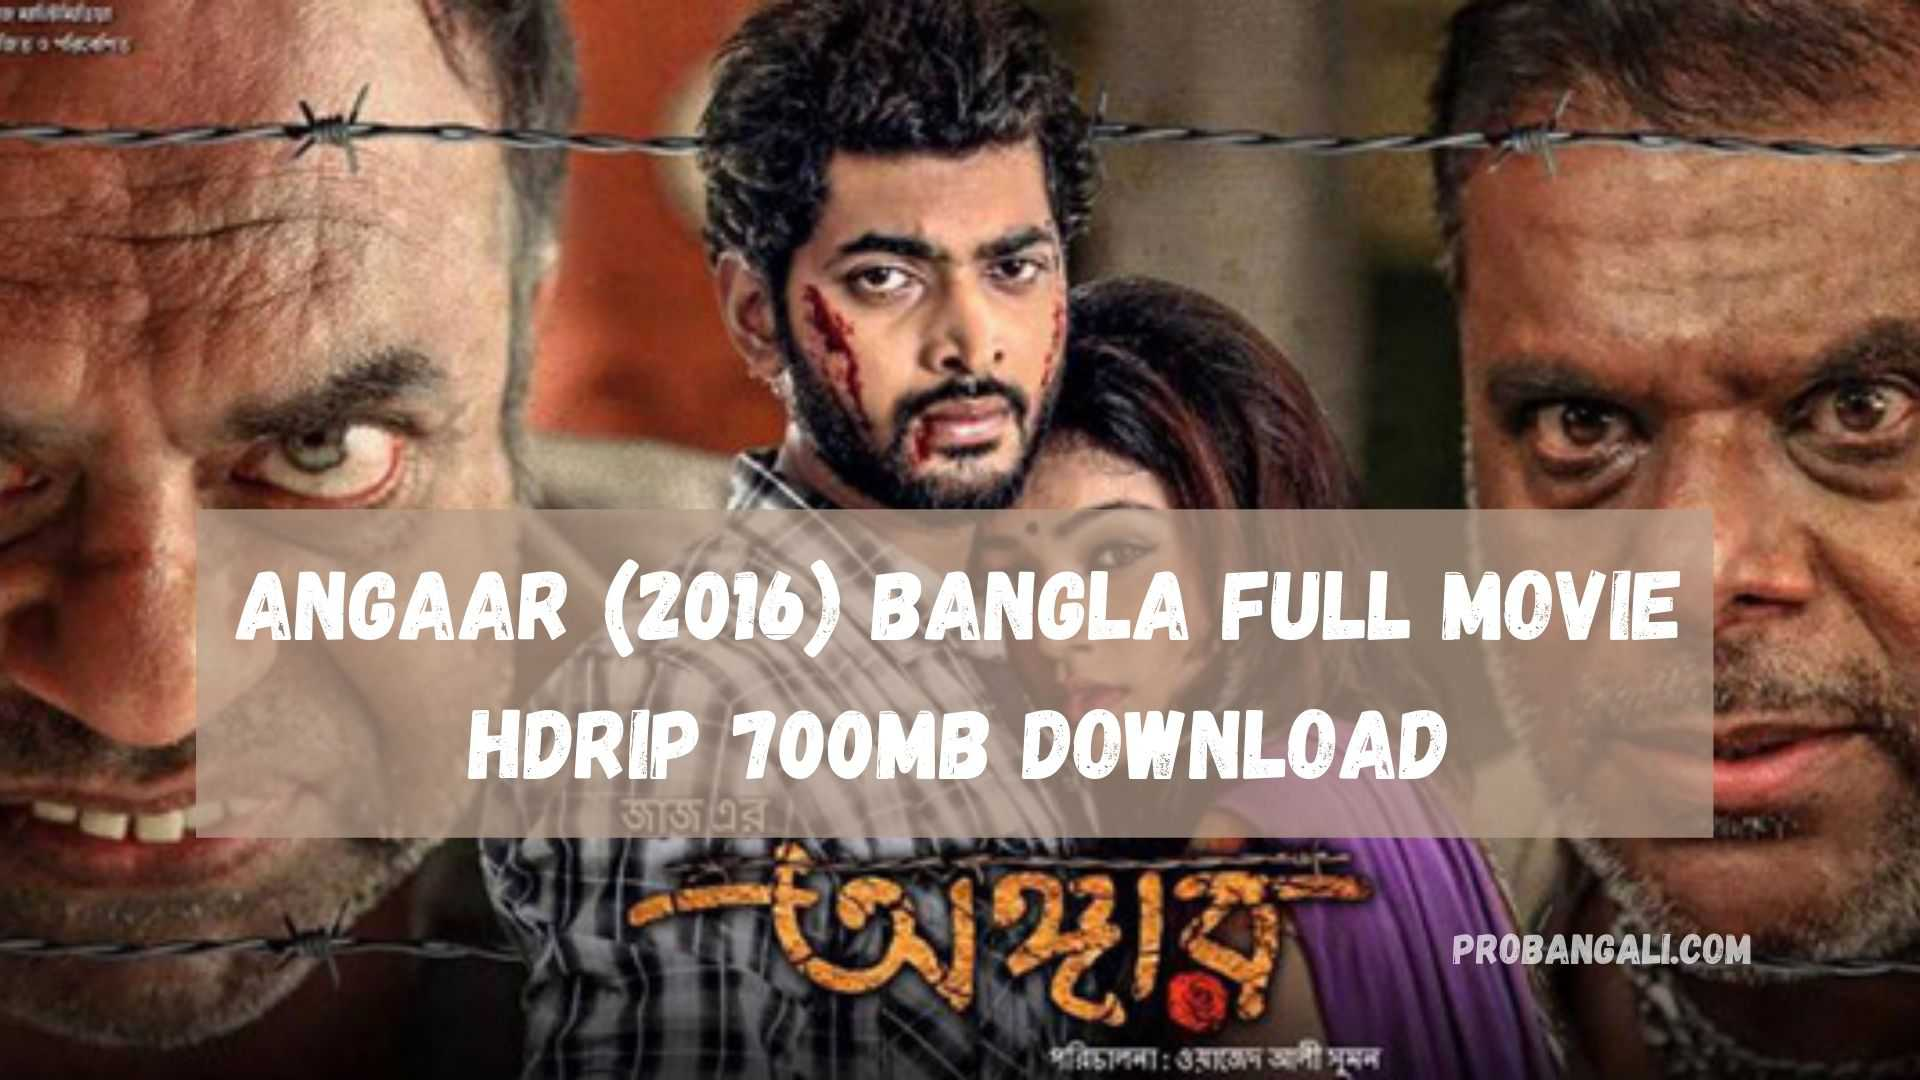 Angaar (2016) bangla full movie hdrip 700mb download